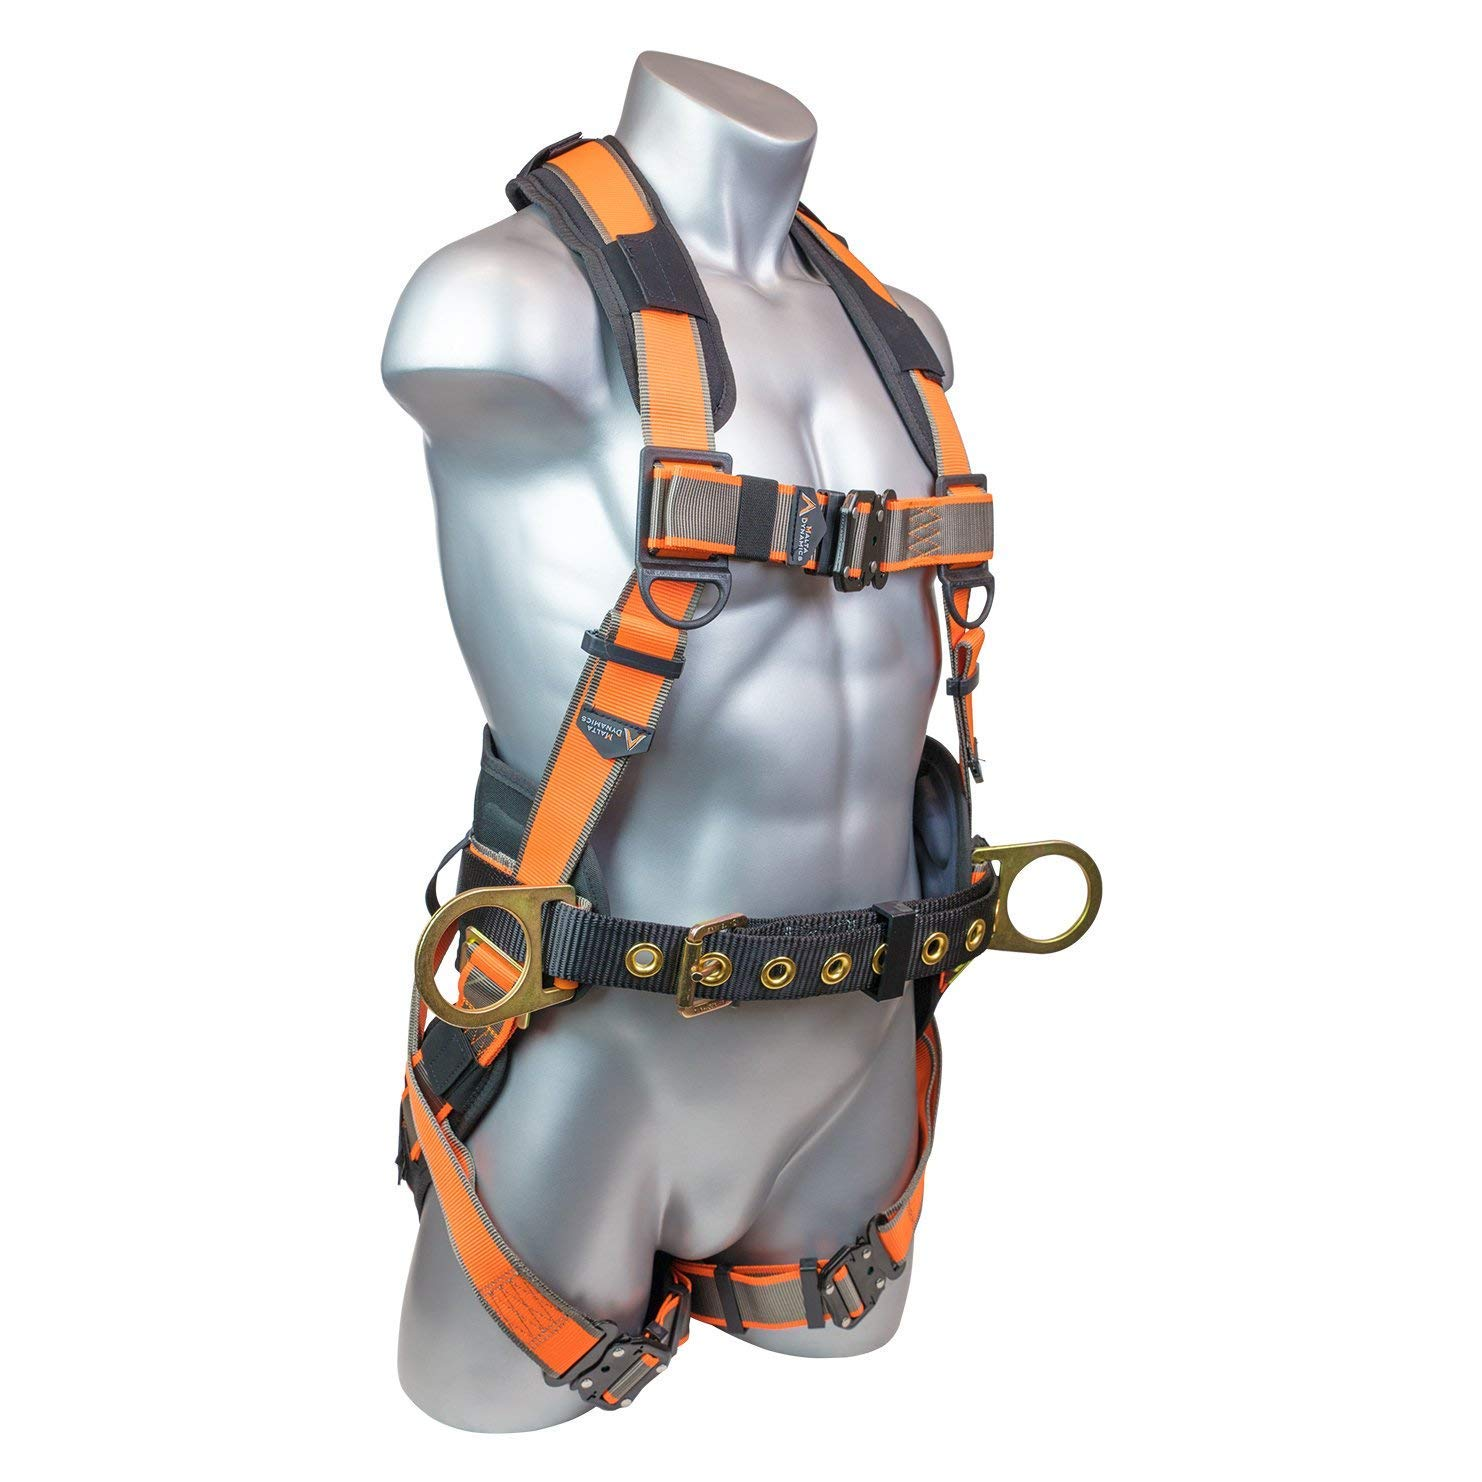 Warthog Comfort MAXX Construction Harness with Removable Belt, Side D-Rings and Additional Thick Padding (S-M-L), OSHA/ANSI Compliant